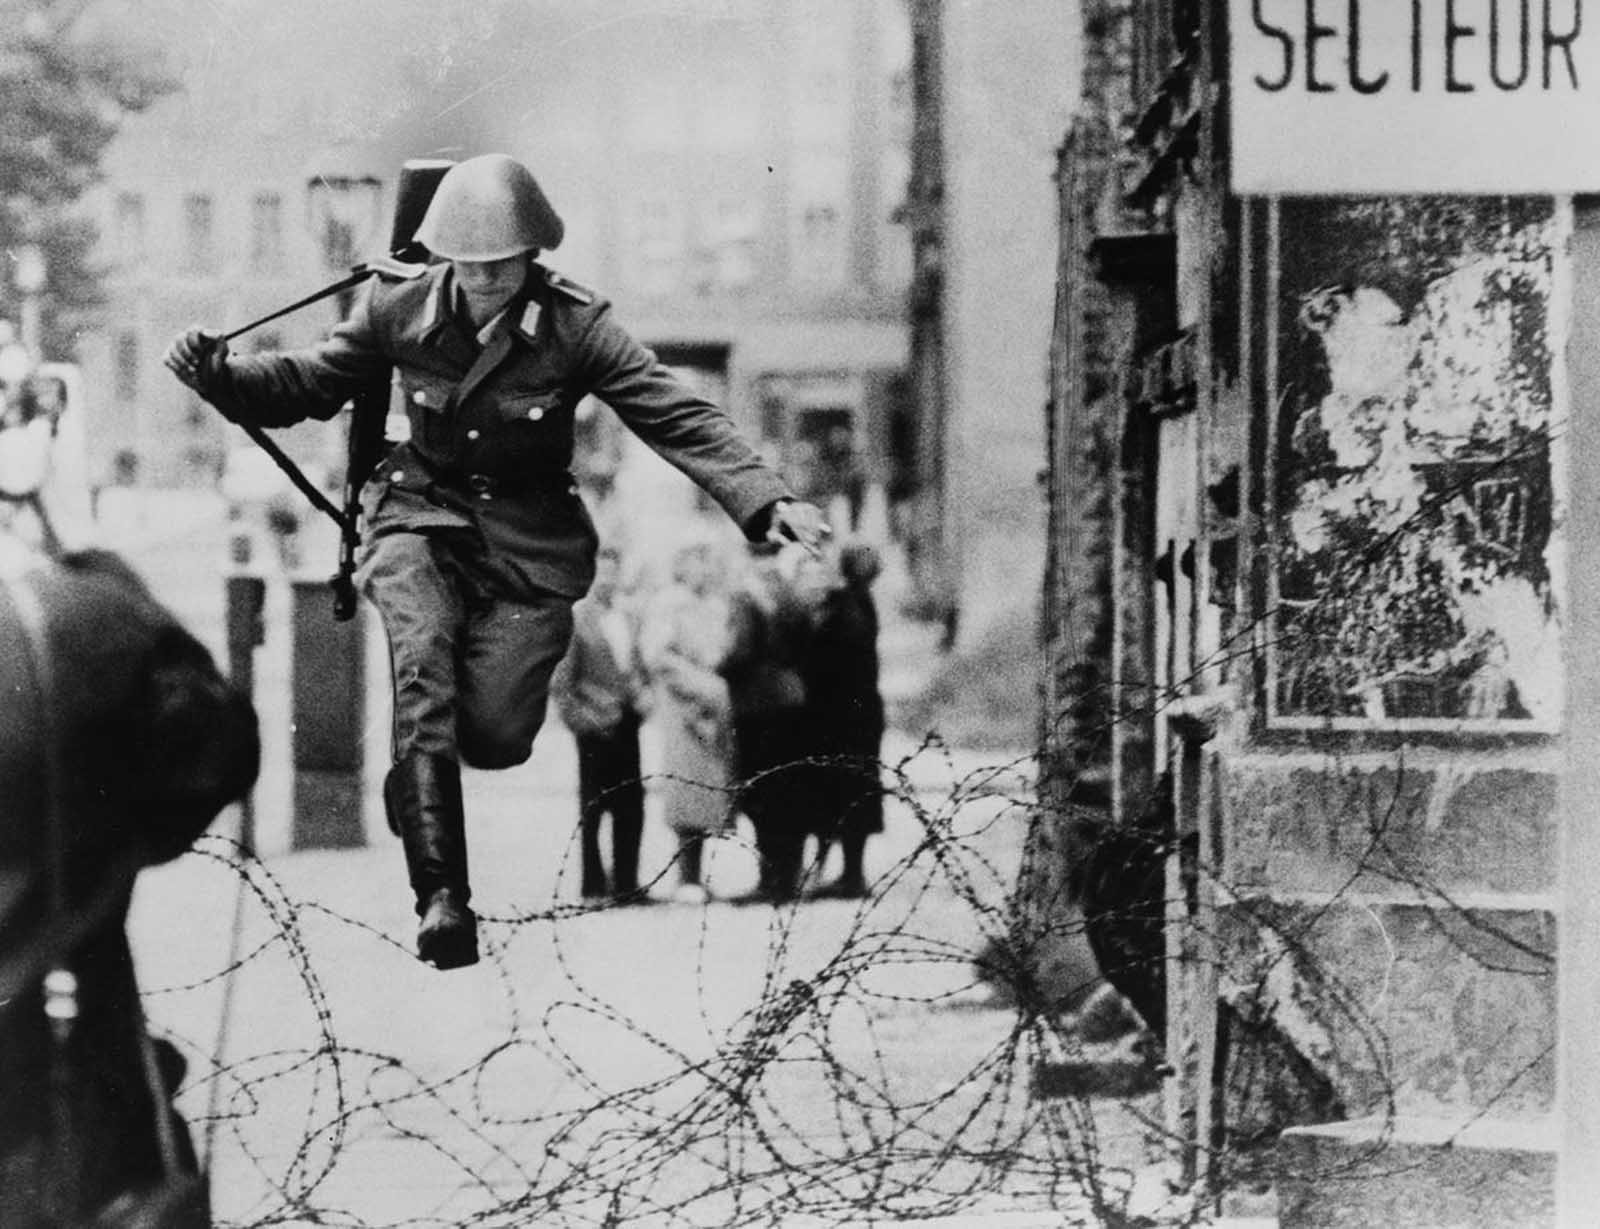 East German border guard Conrad Schumann leaps into the French Sector of West Berlin over barbed wire on August 15, 1961. More info about this picture.